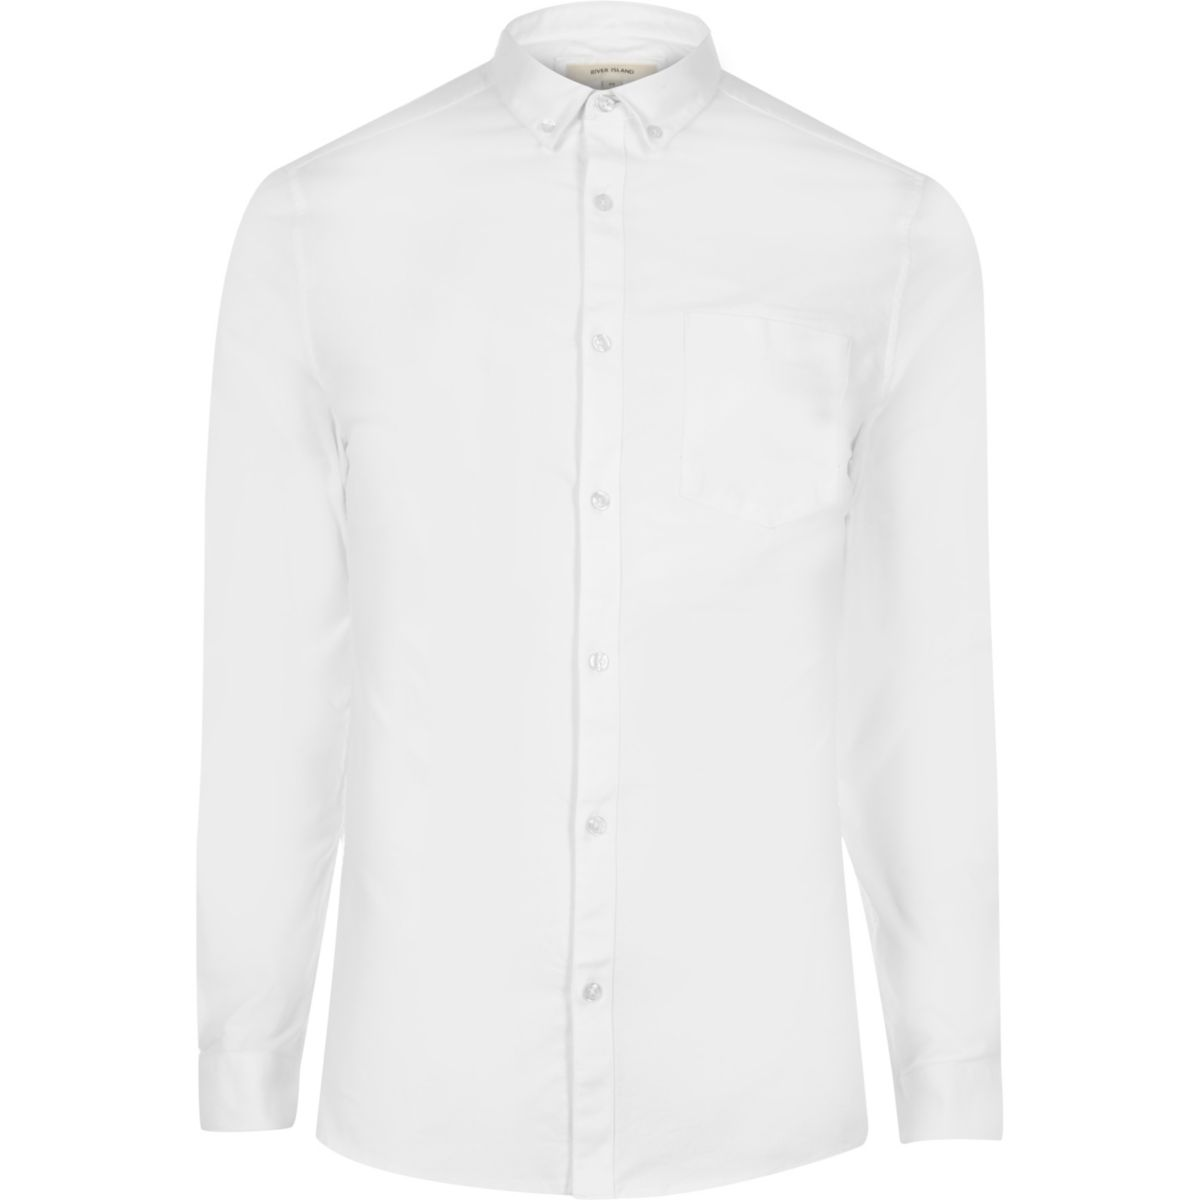 White casual skinny fit Oxford shirt